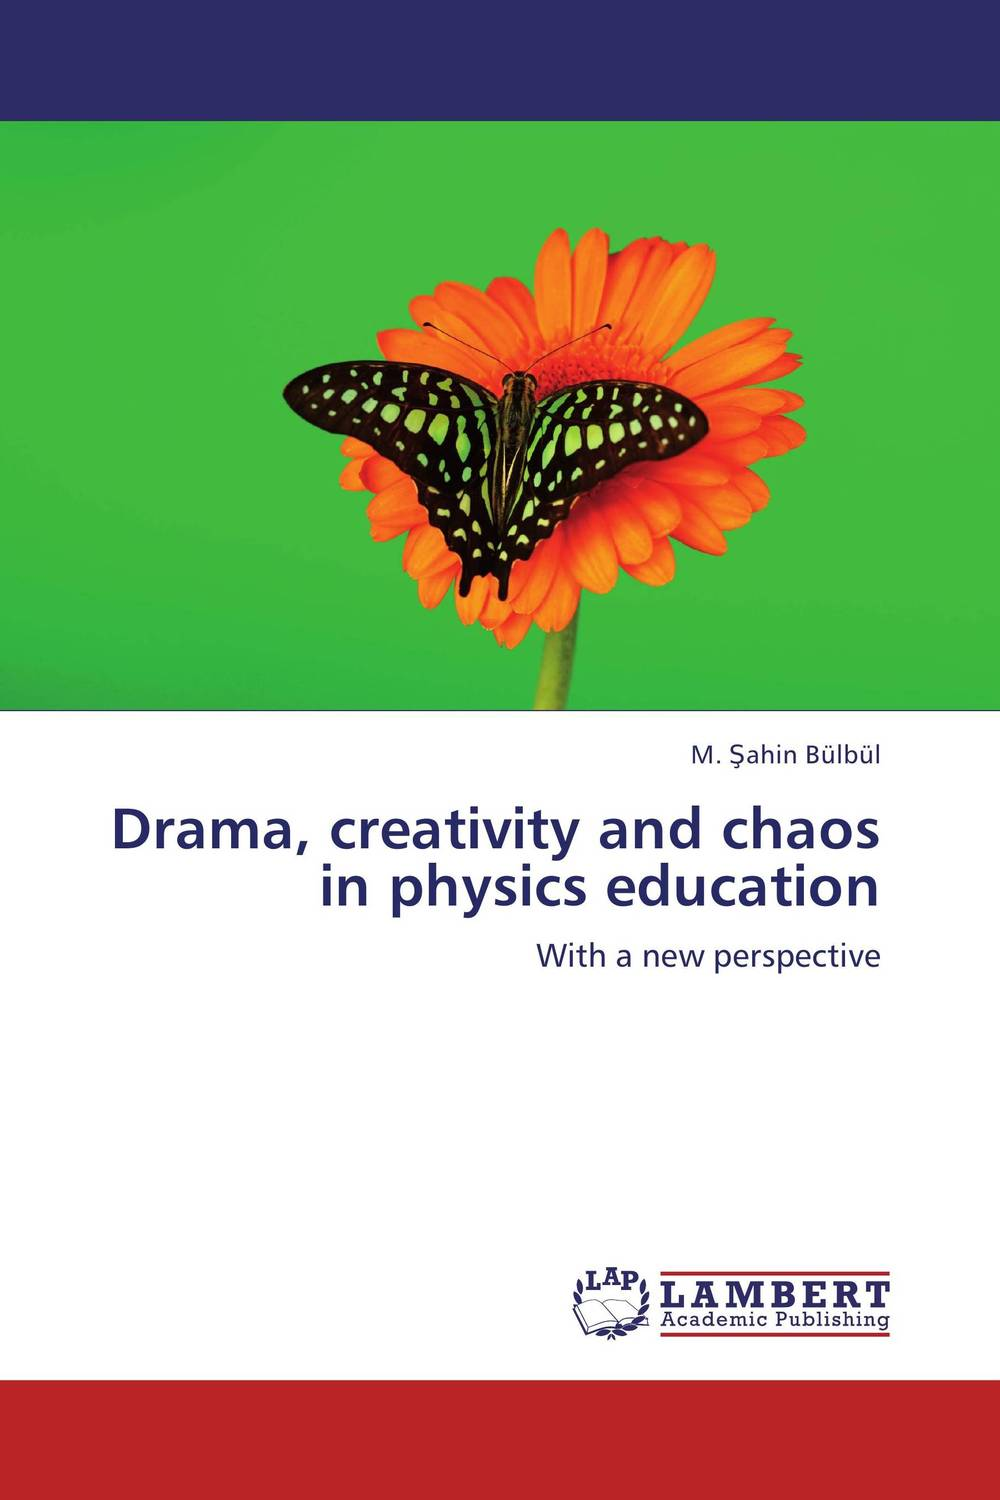 Drama, creativity and chaos in physics education pain management among colorectal cancer patient on chemotherapy